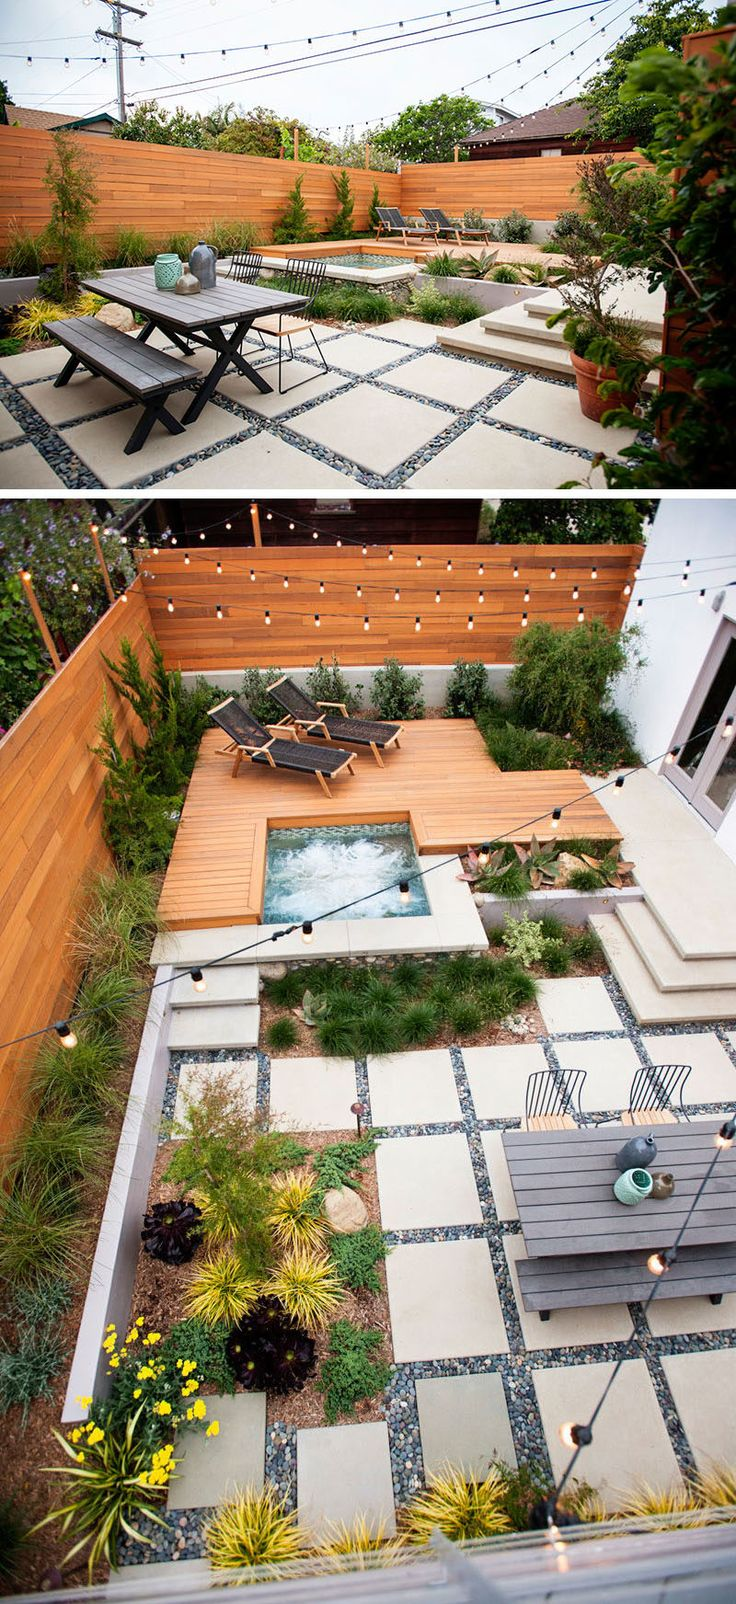 Best 25+ Modern backyard ideas on Pinterest